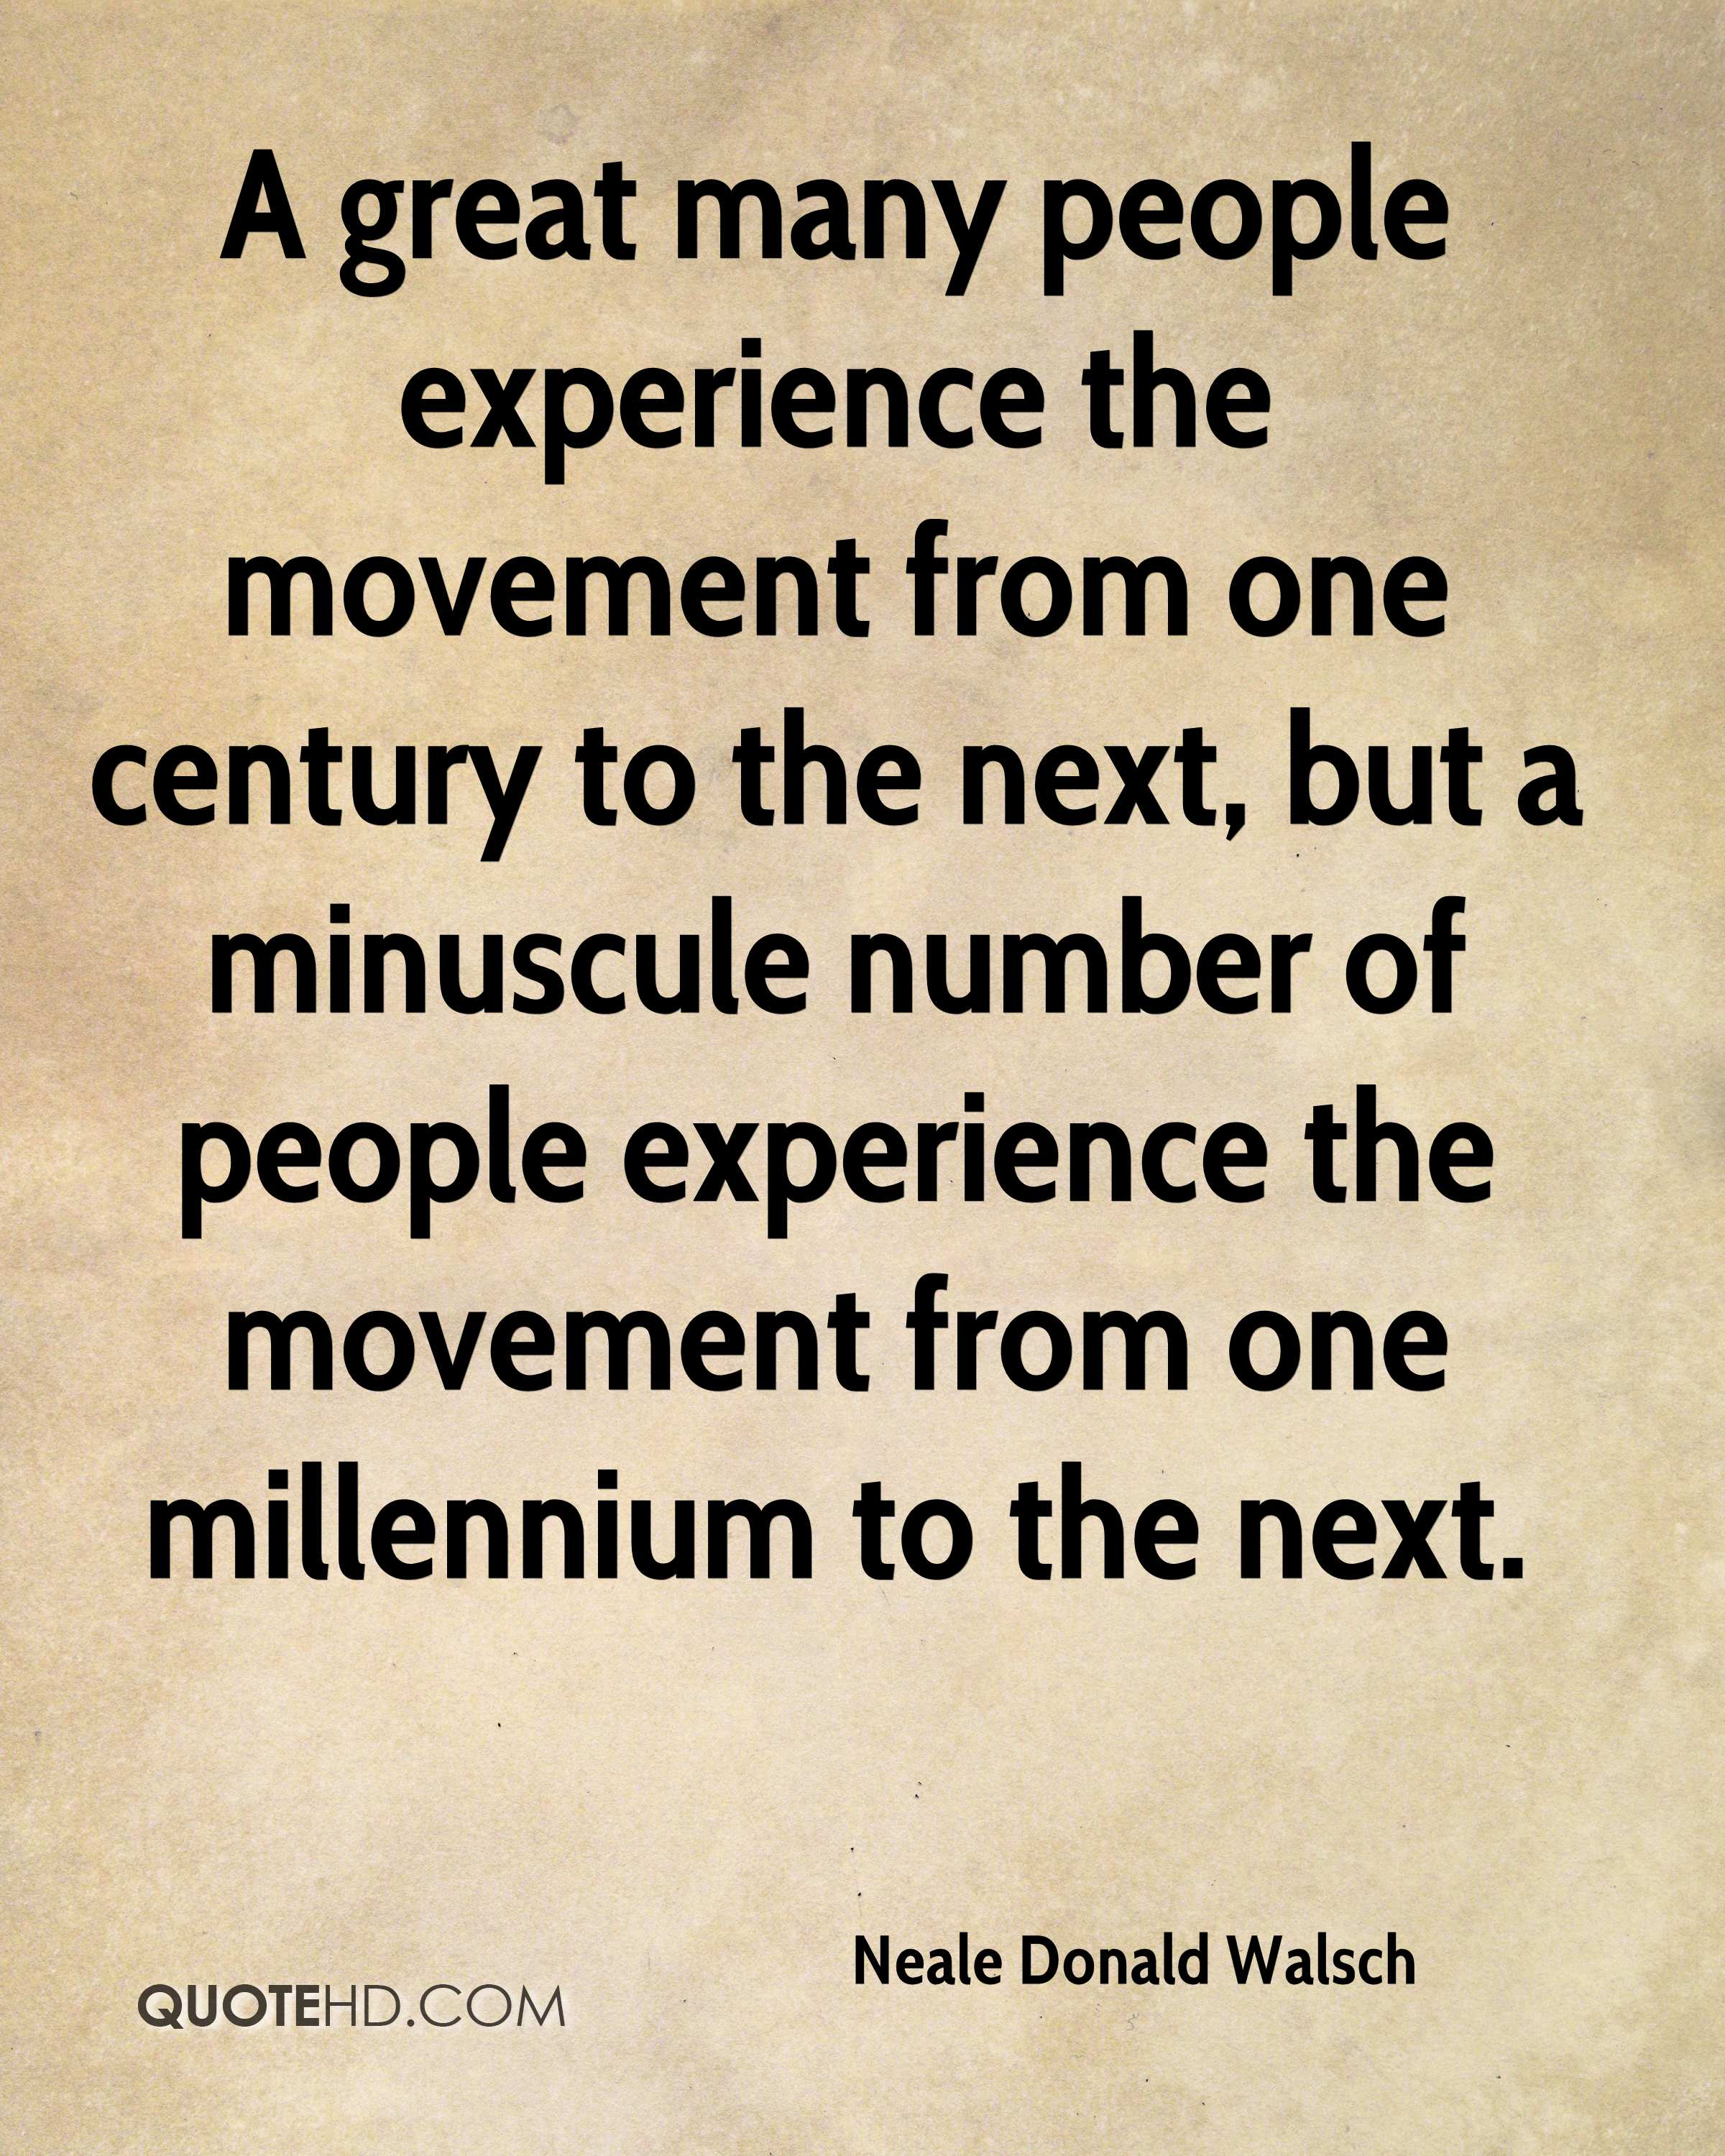 A great many people experience the movement from one century to the next, but a minuscule number of people experience the movement from one millennium to the next.